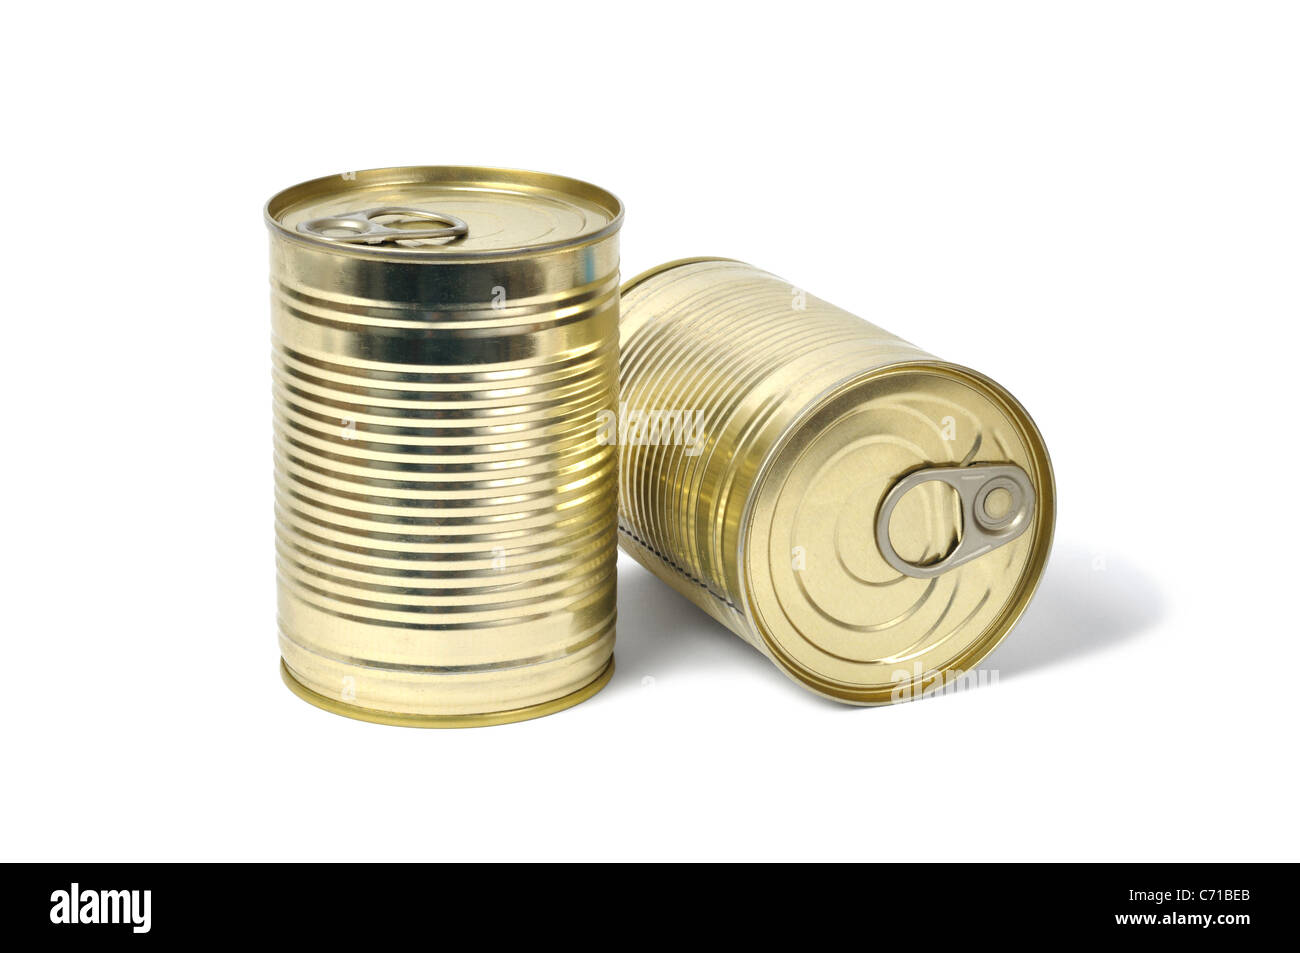 Cans on White - Stock Image